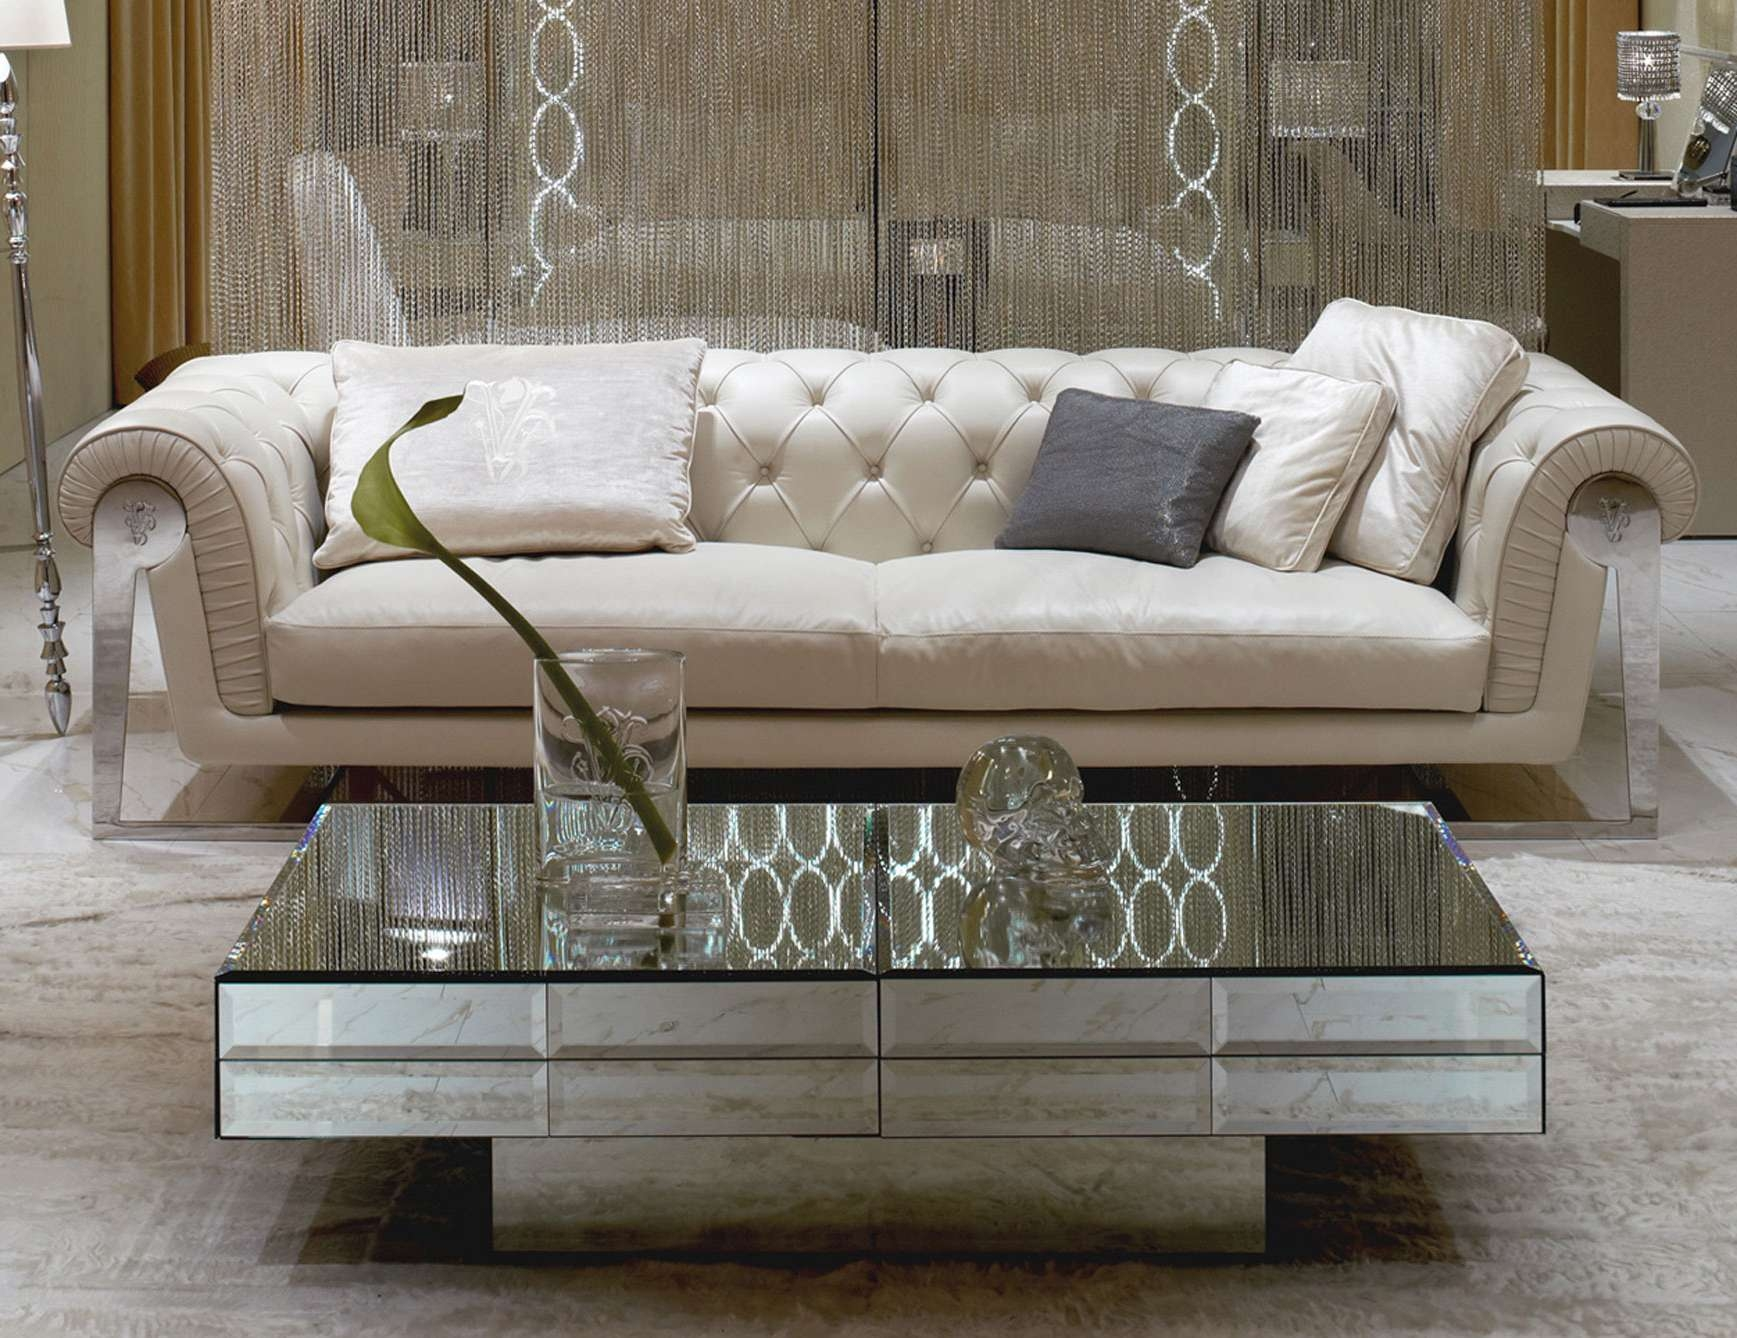 Nella Vetrina Visionnaire Ipe Cavalli Acer Designer Glass Coffee Table Intended For Current Coffee Tables Mirrored (View 17 of 20)